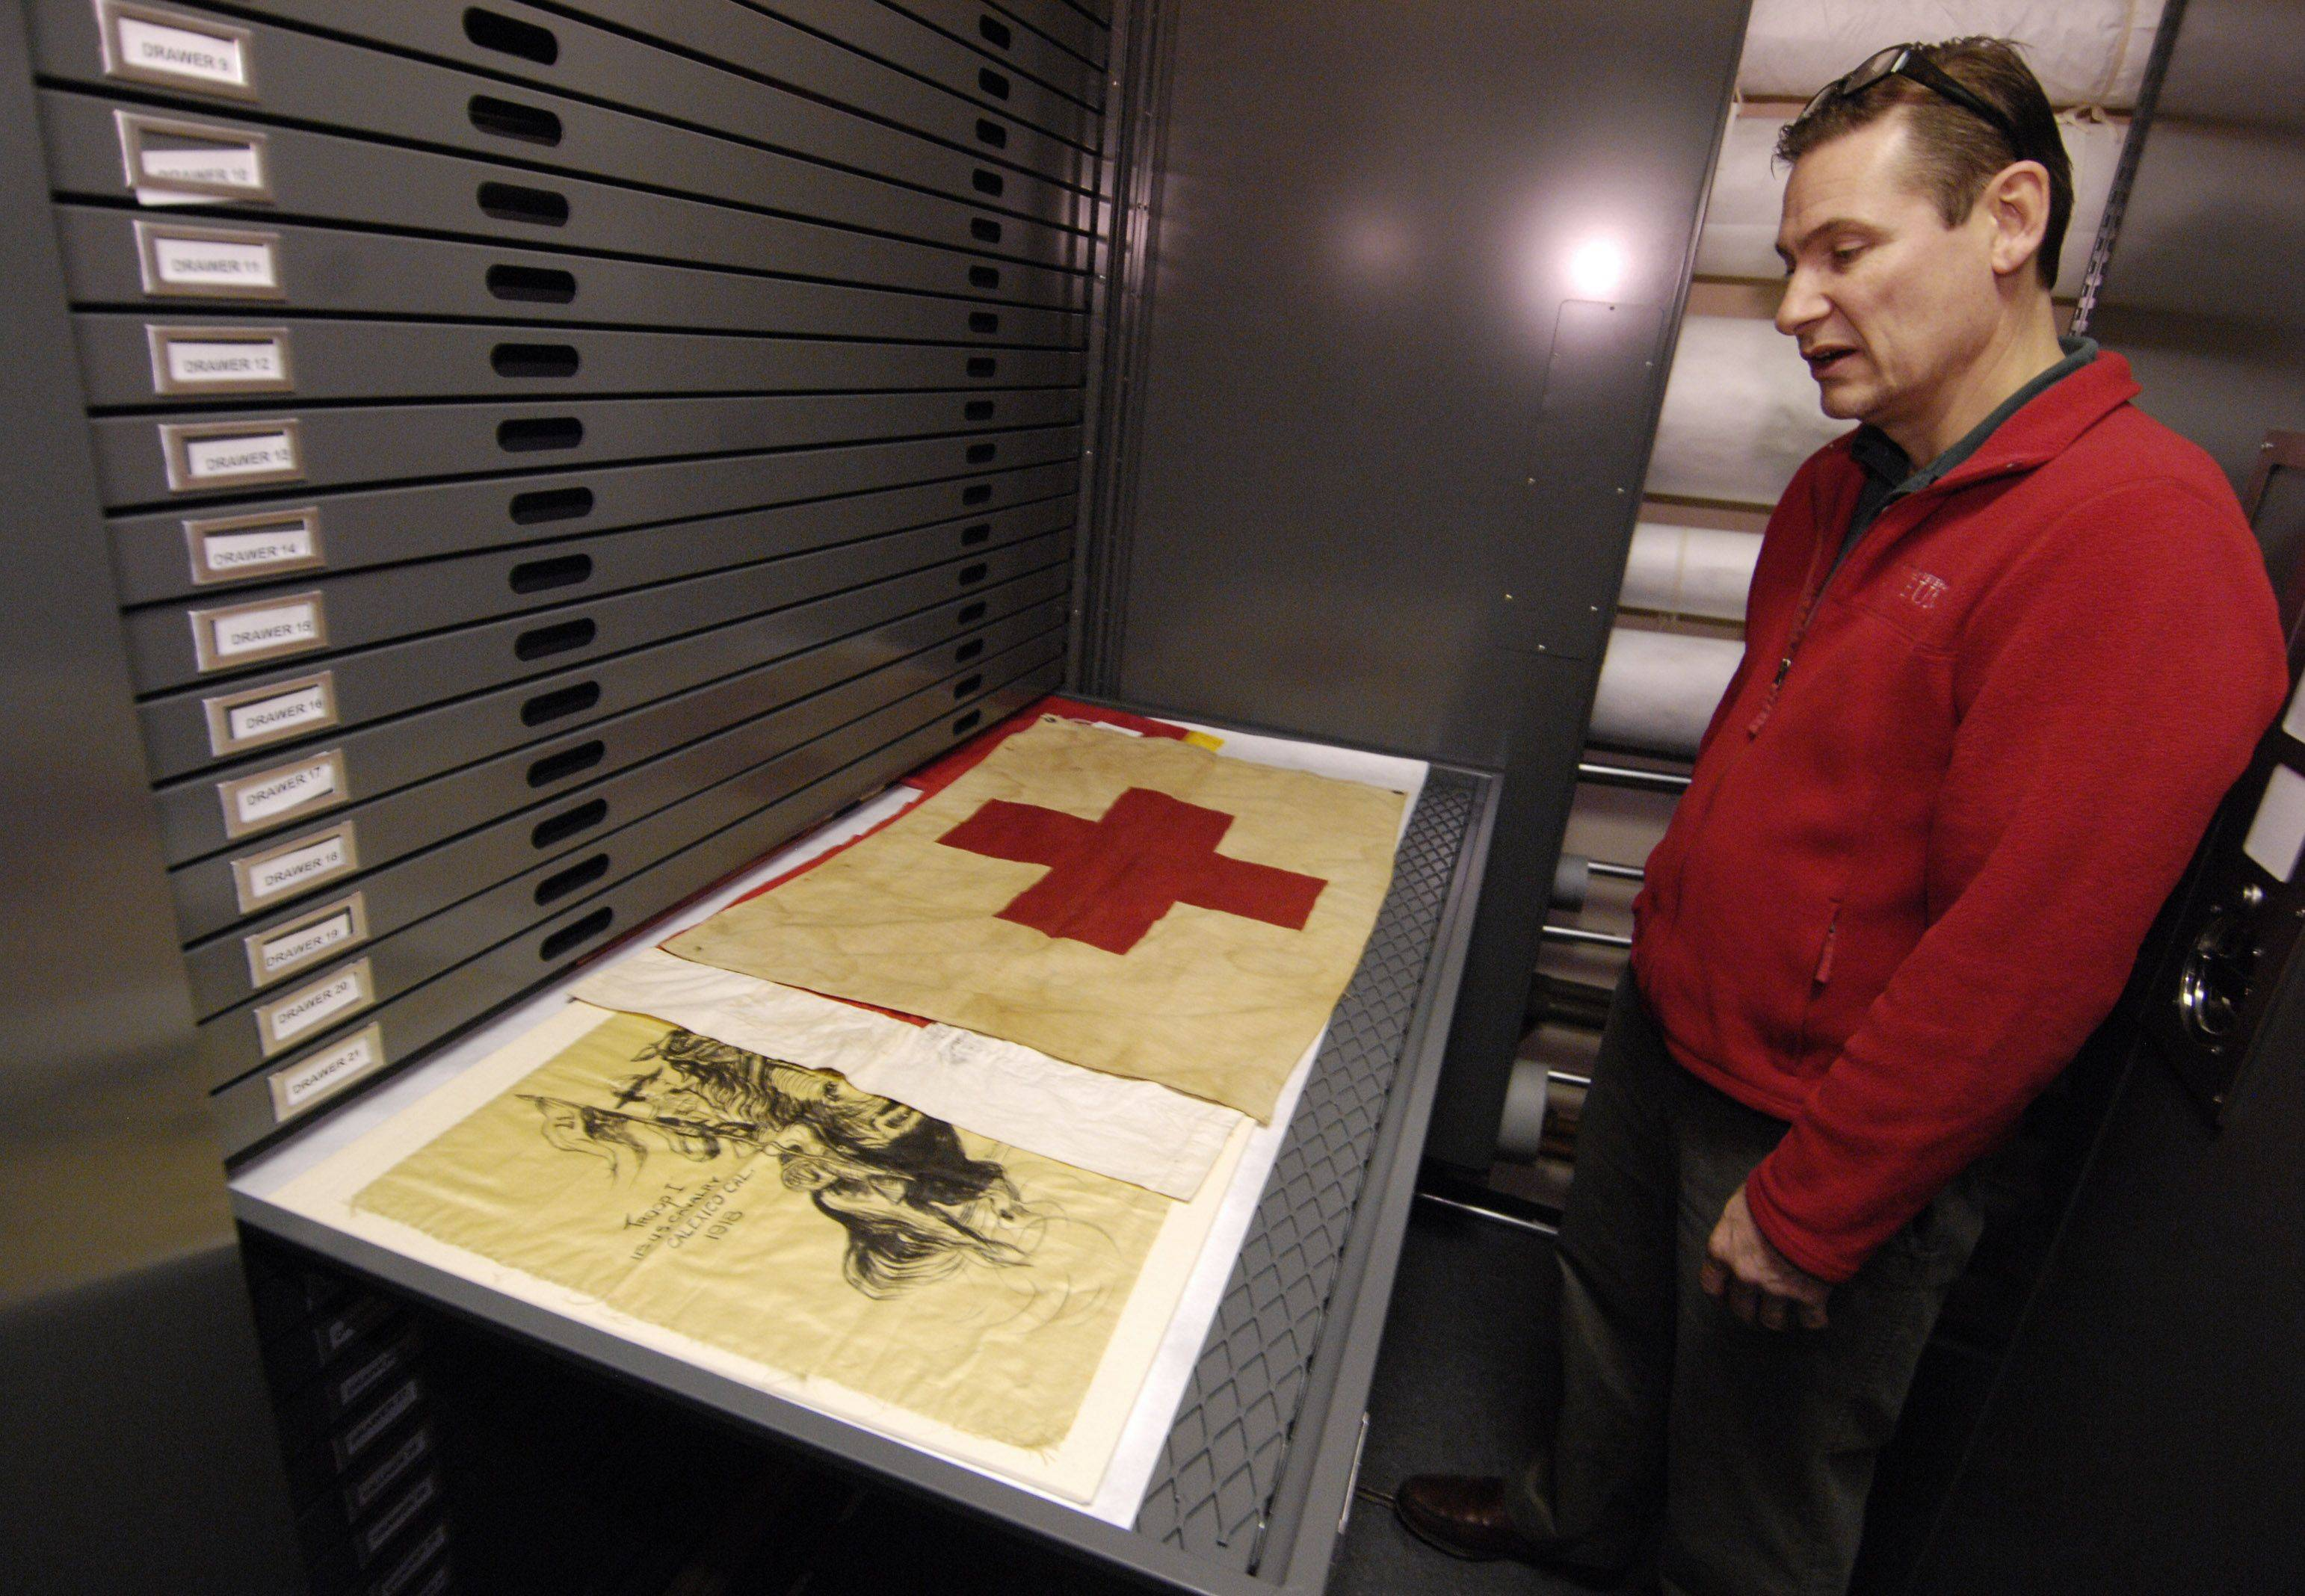 William Brewster, Curator of Collections shows off some of the flags in the archives of 1st Division Museum at Cantigny Park in Wheaton.